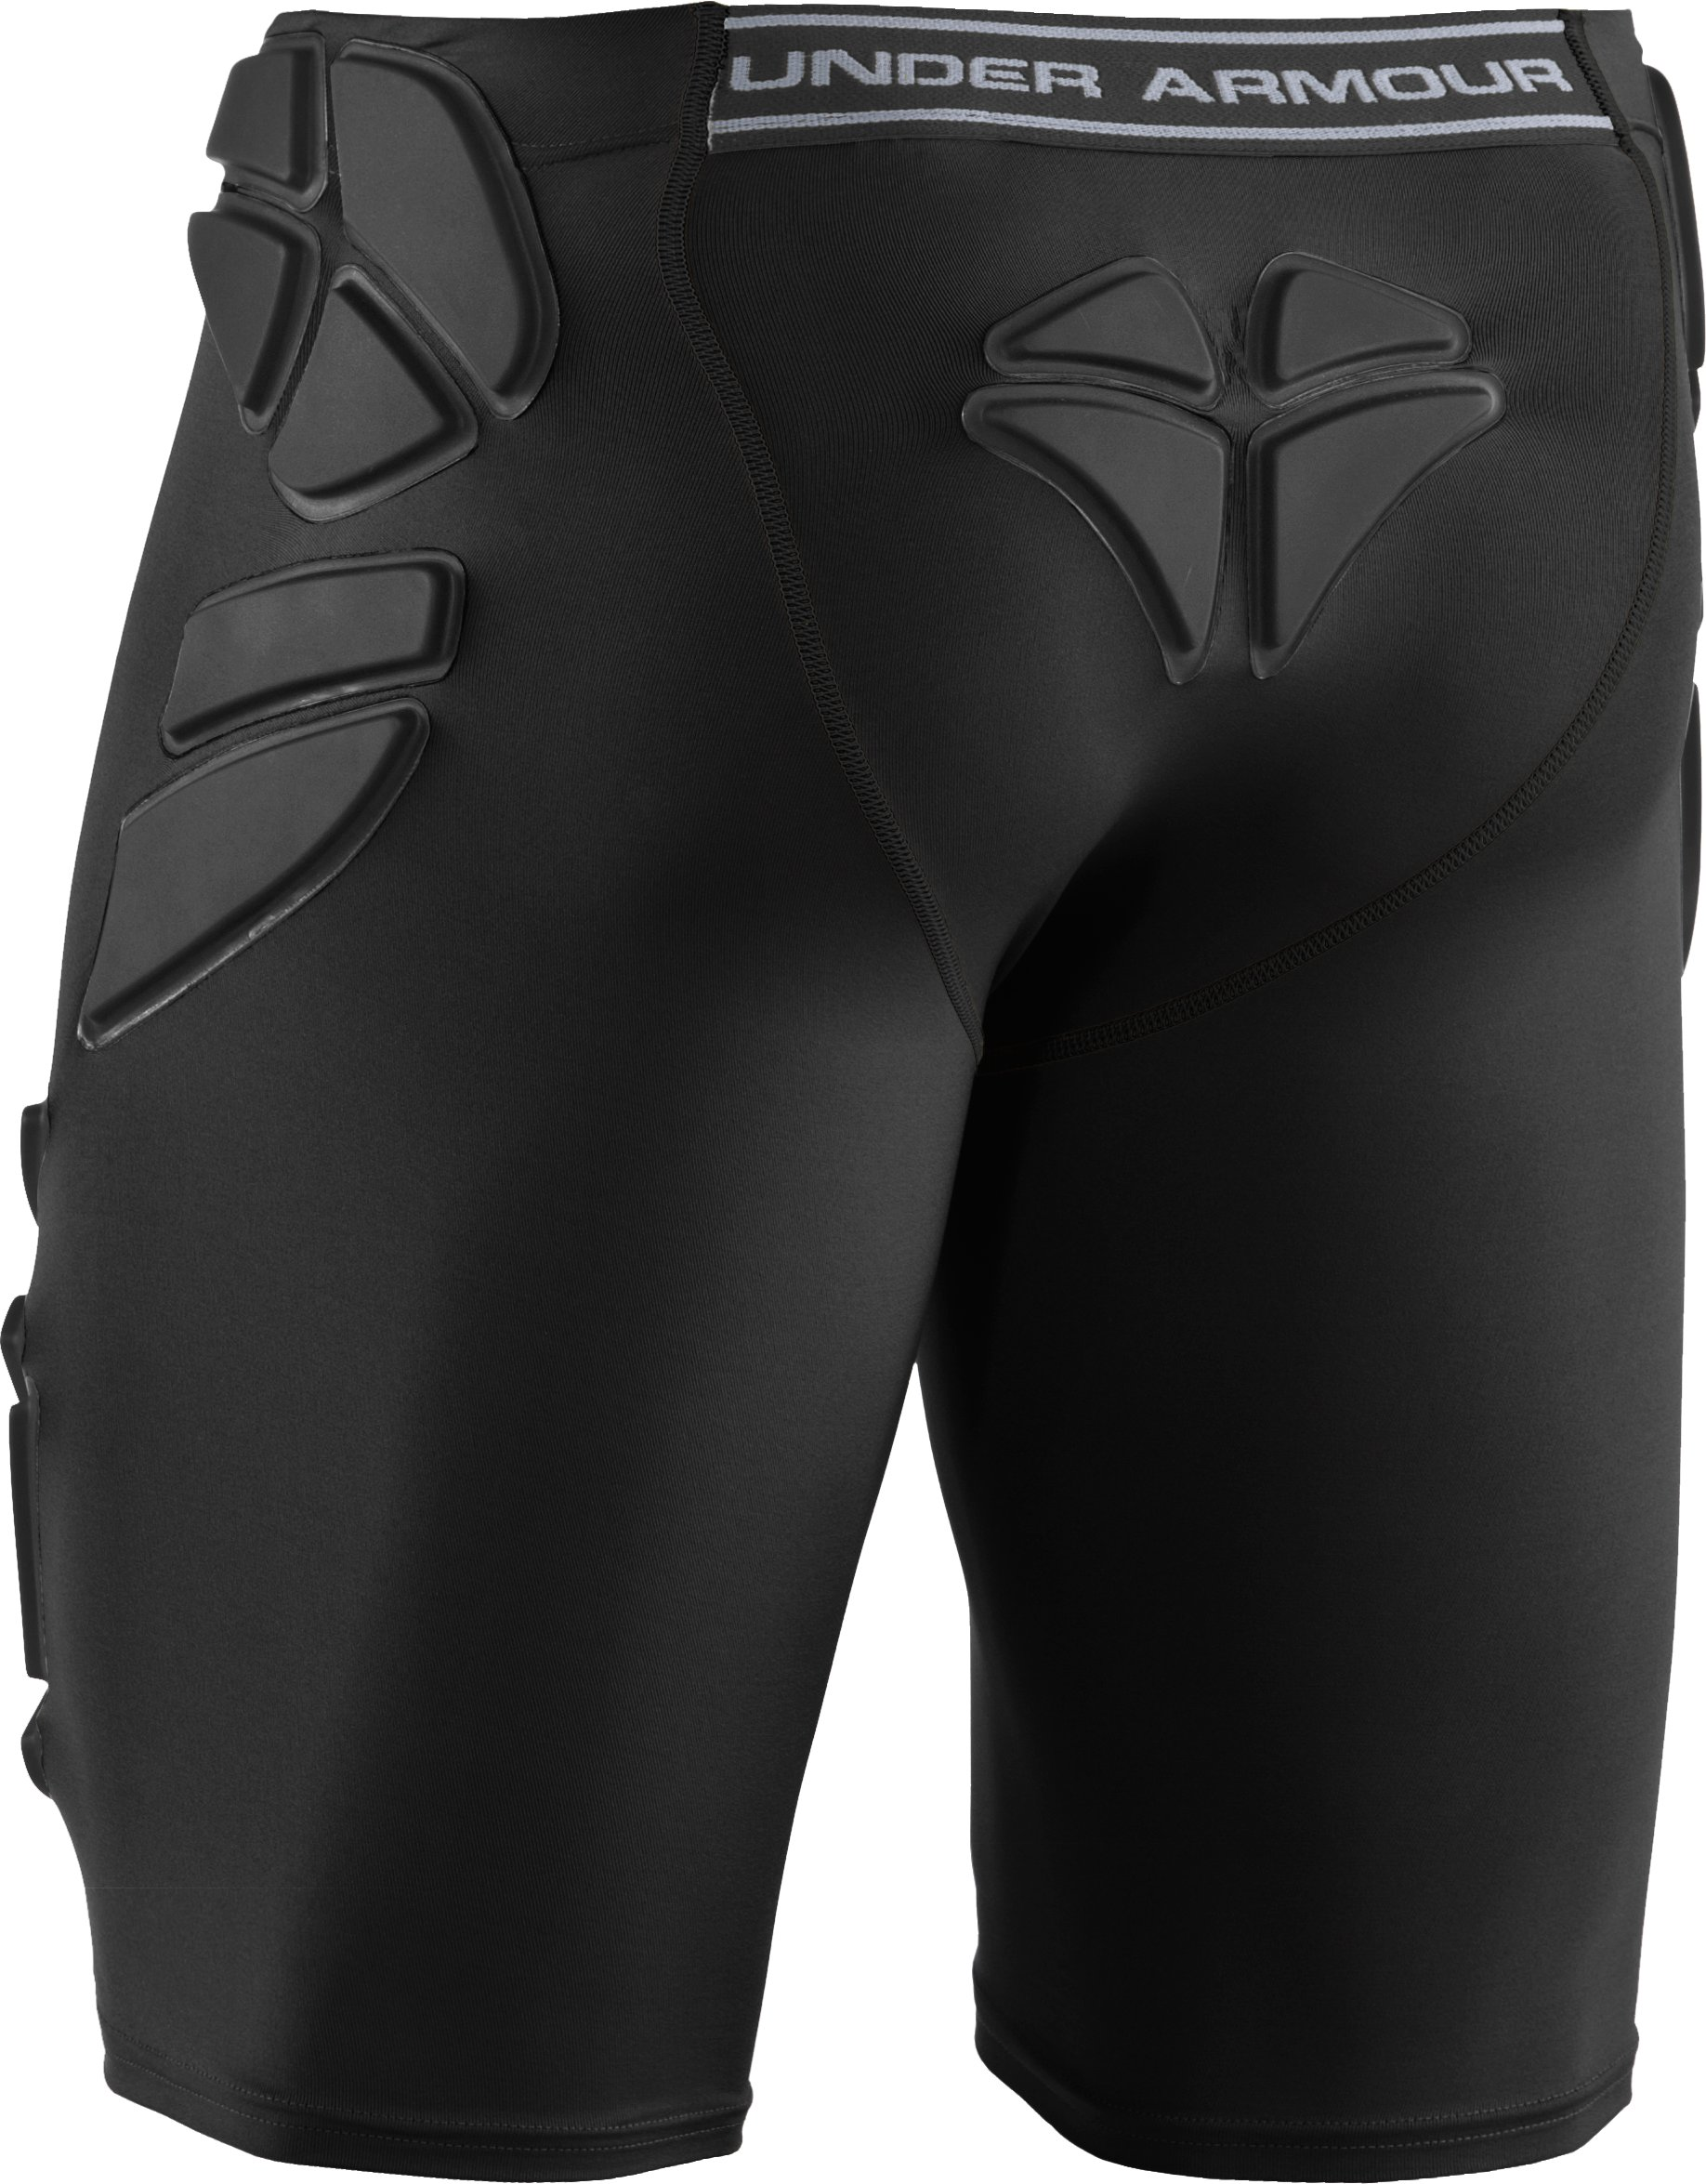 Men's Gameday Armour® Girdle, Black ,